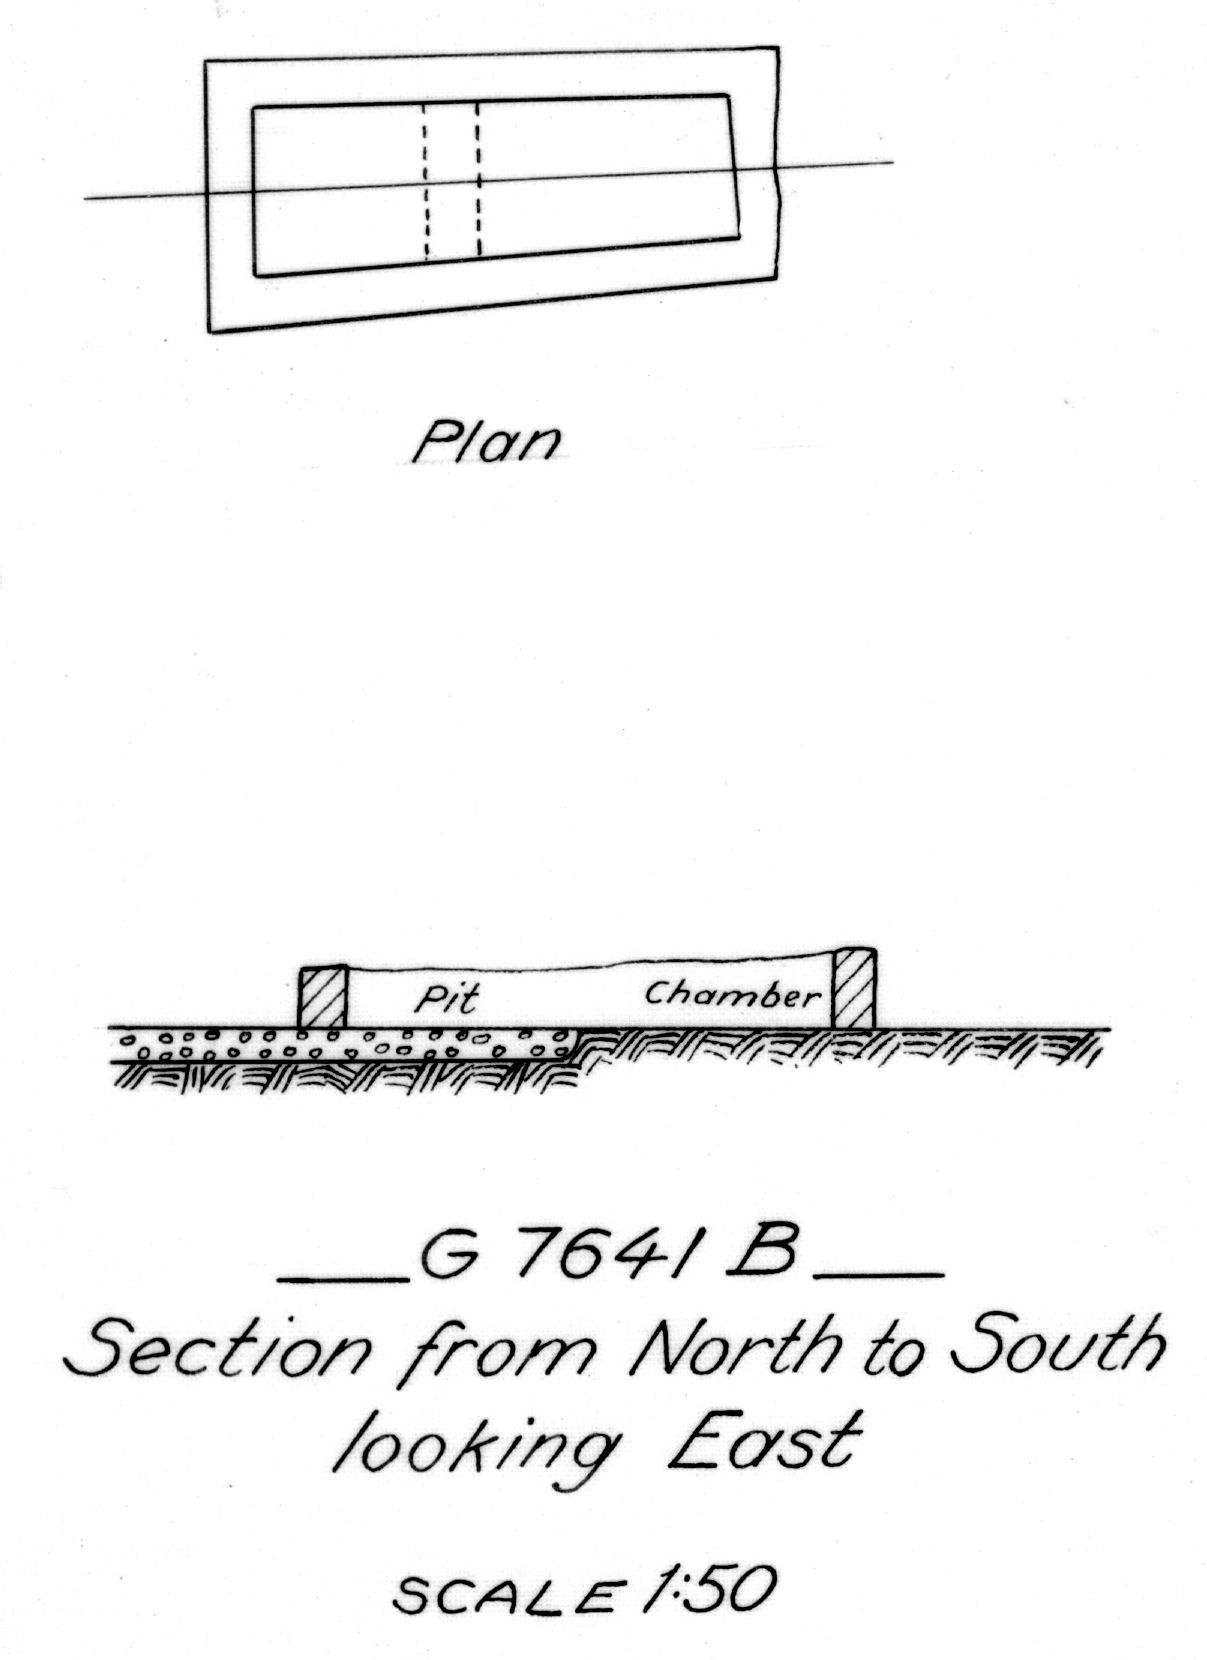 Maps and plans: G 7641, Shaft B